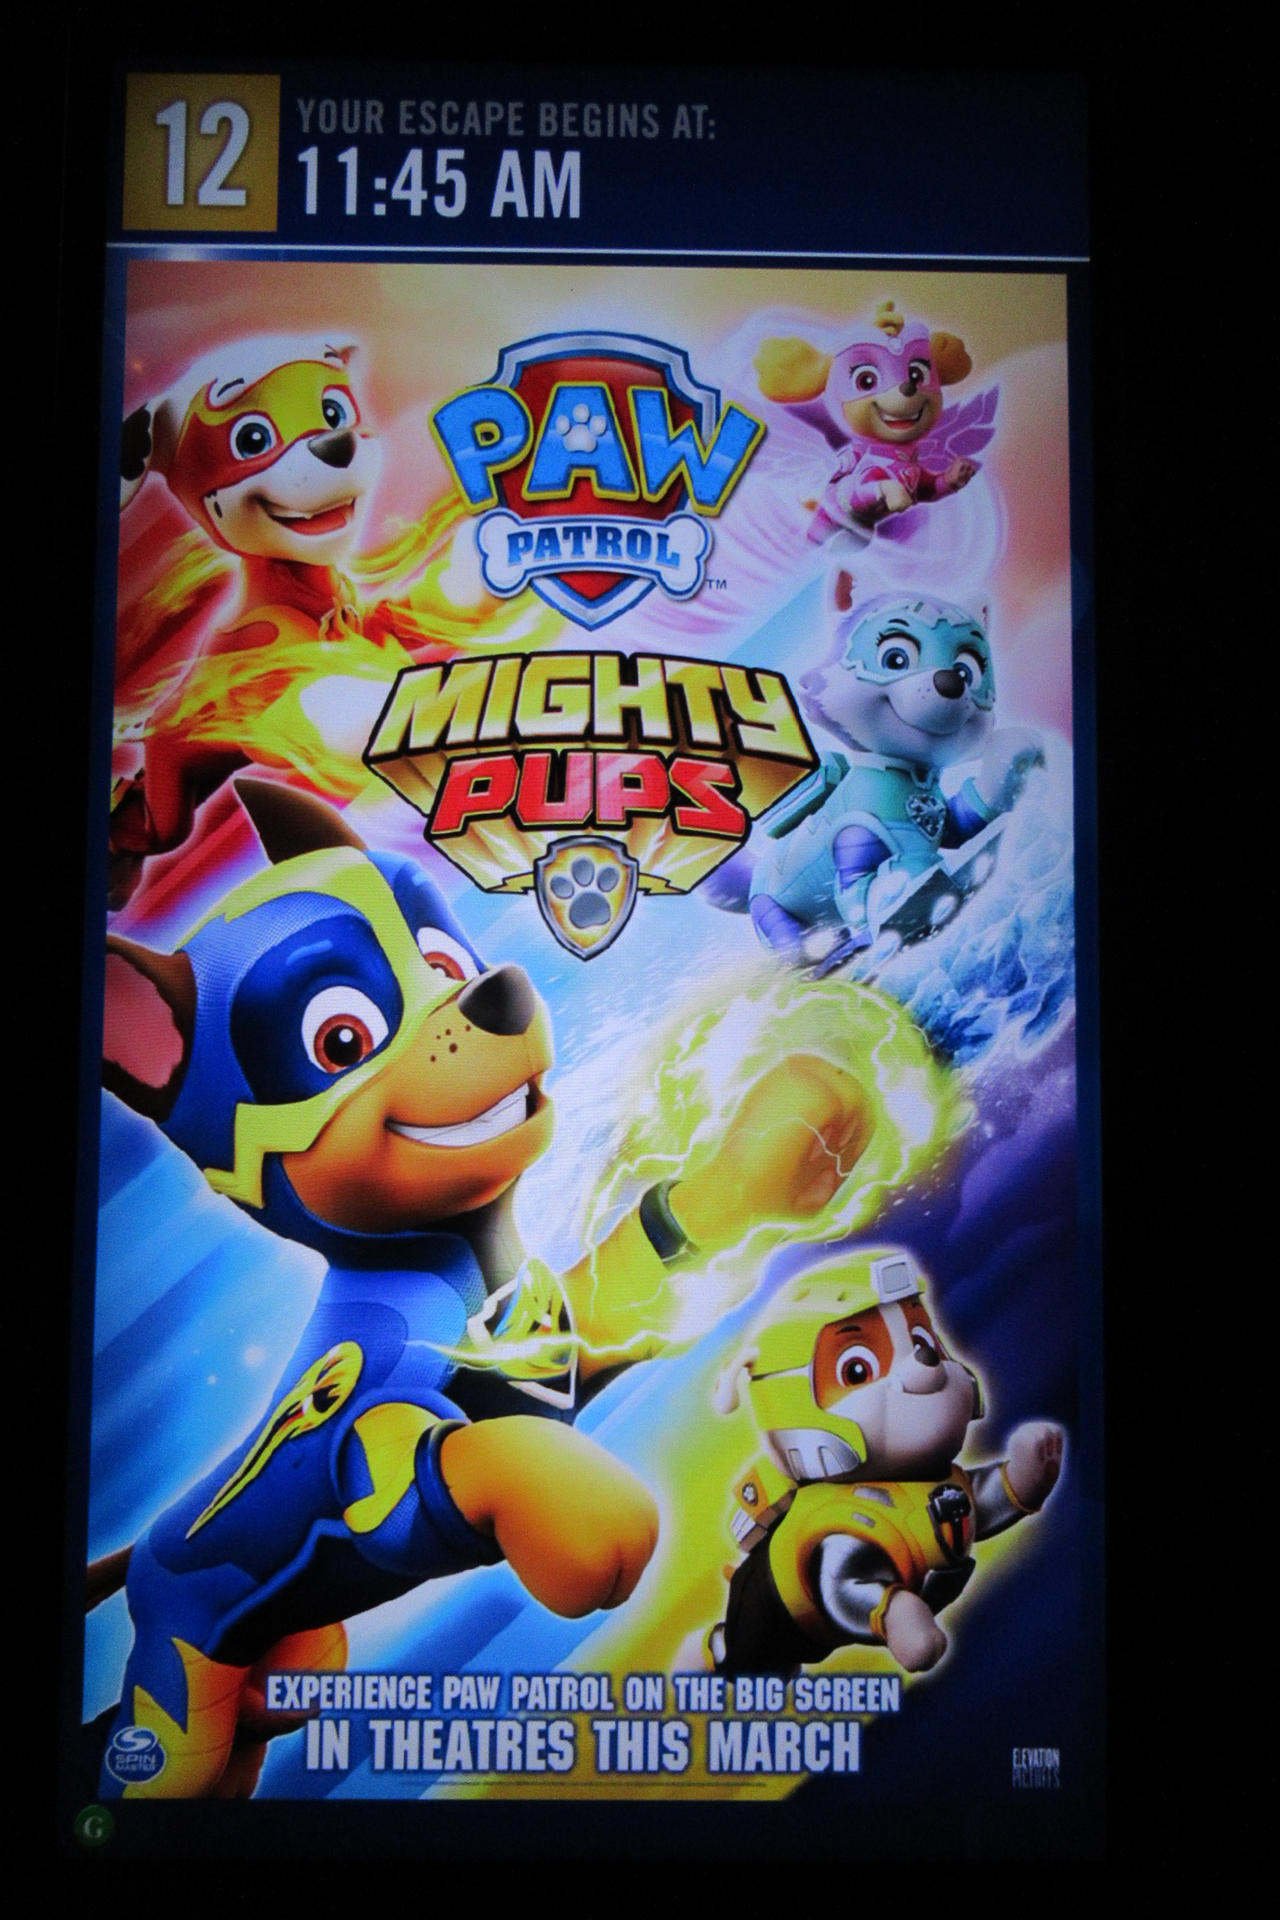 Paw Patrol Mighty Pups Theater Movie Poster by Codetski101